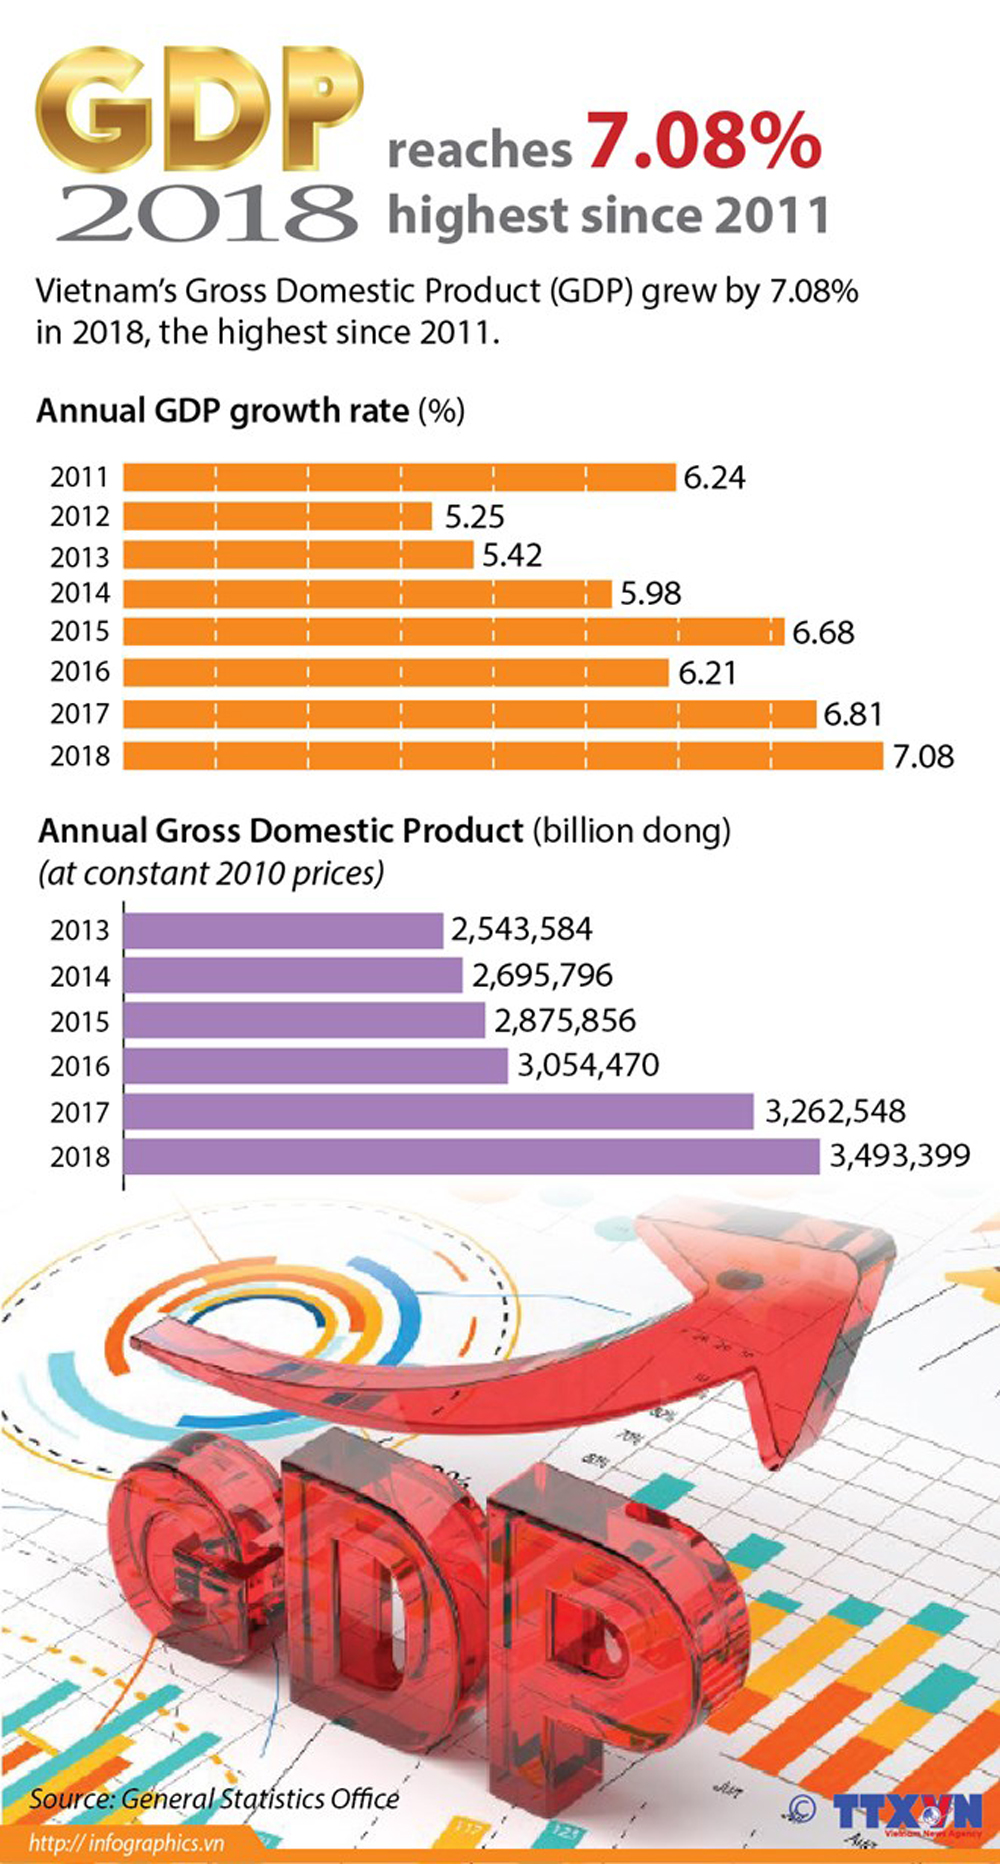 Vietnam's GDP, highest increase, GDP growth, Vietnam Gross Domestic Product, Vietnam bussiness climate